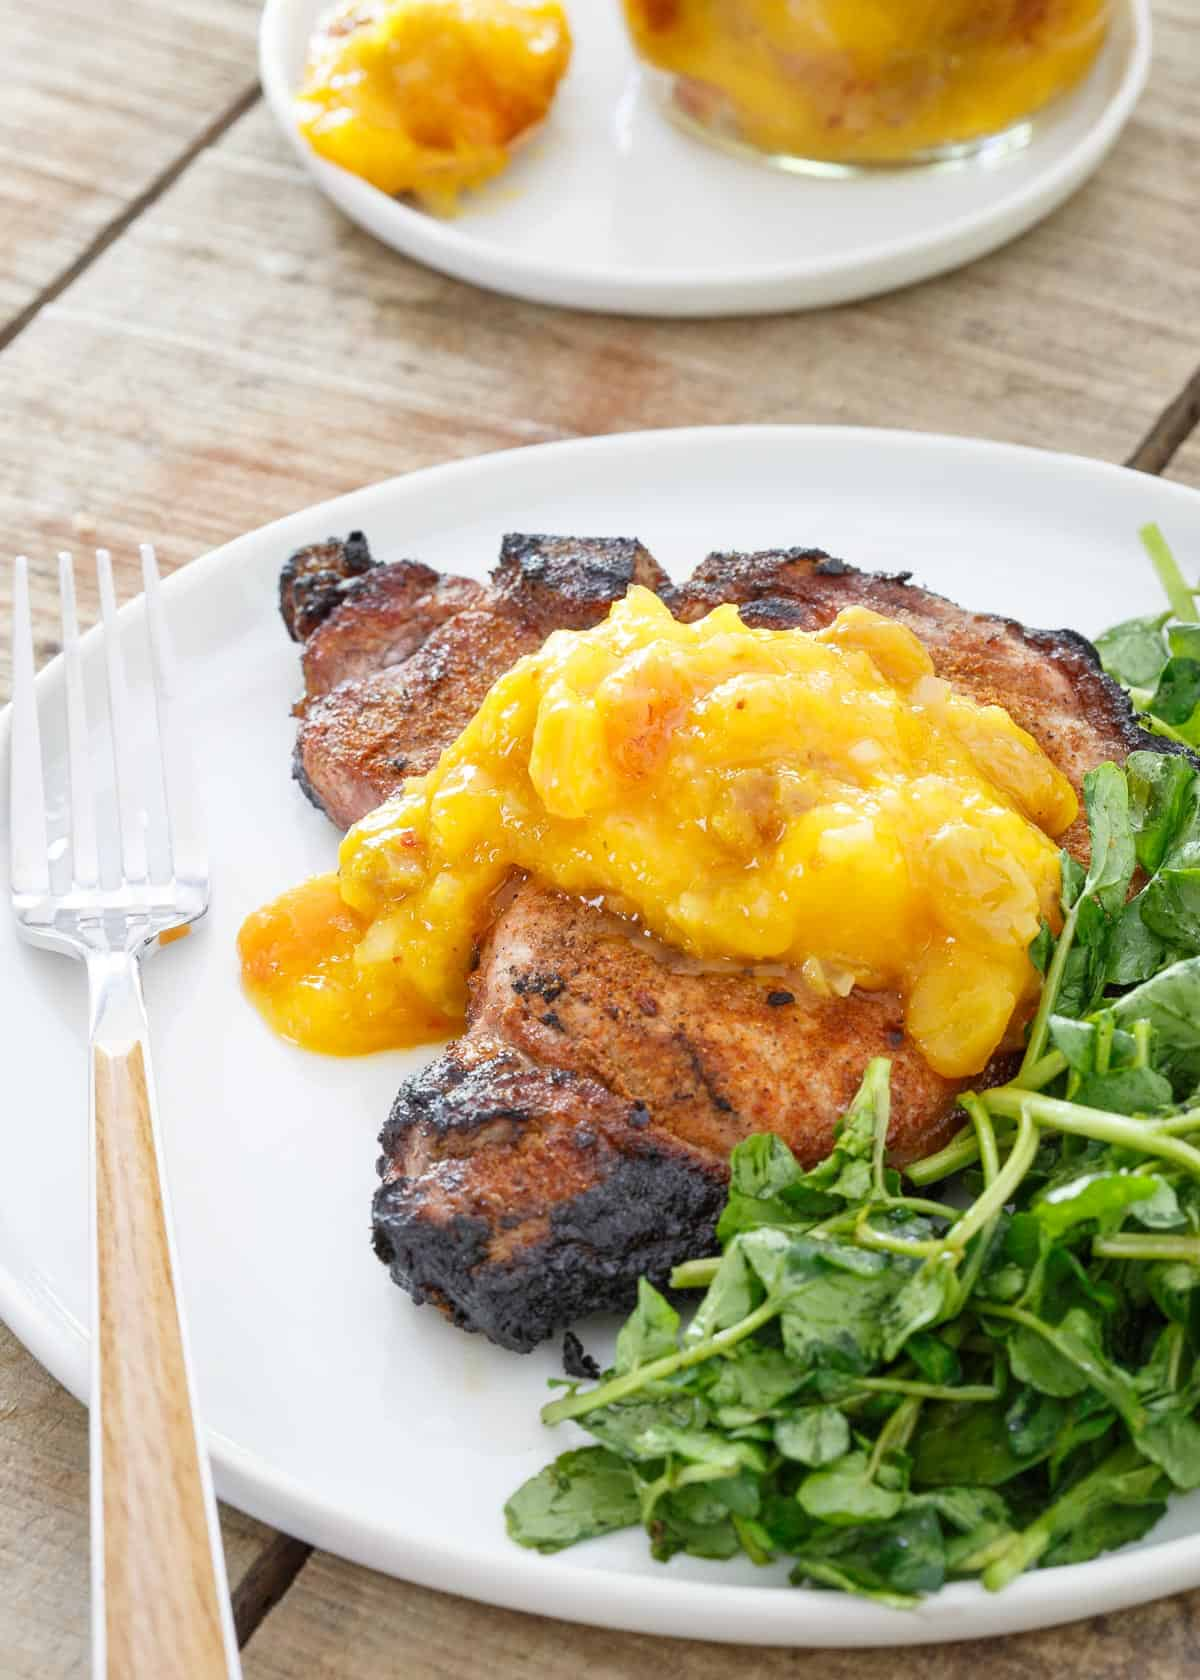 Spice Rubbed Pork Chops are topped with Mango Peach Chutney for a sweet and spicy bite.